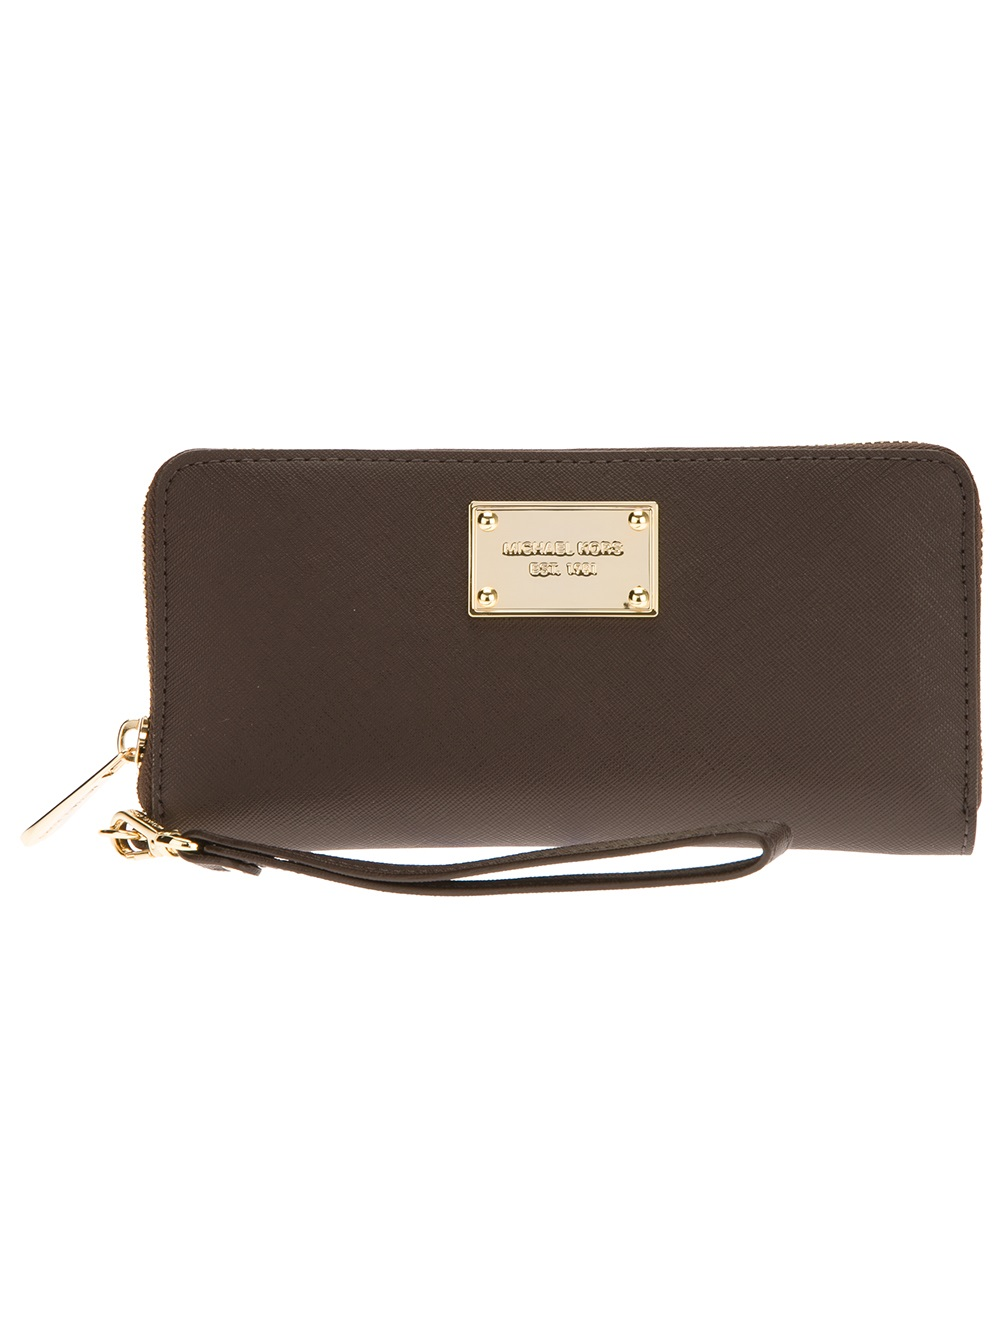 michael kors iphone 5 continental wallet in brown lyst. Black Bedroom Furniture Sets. Home Design Ideas